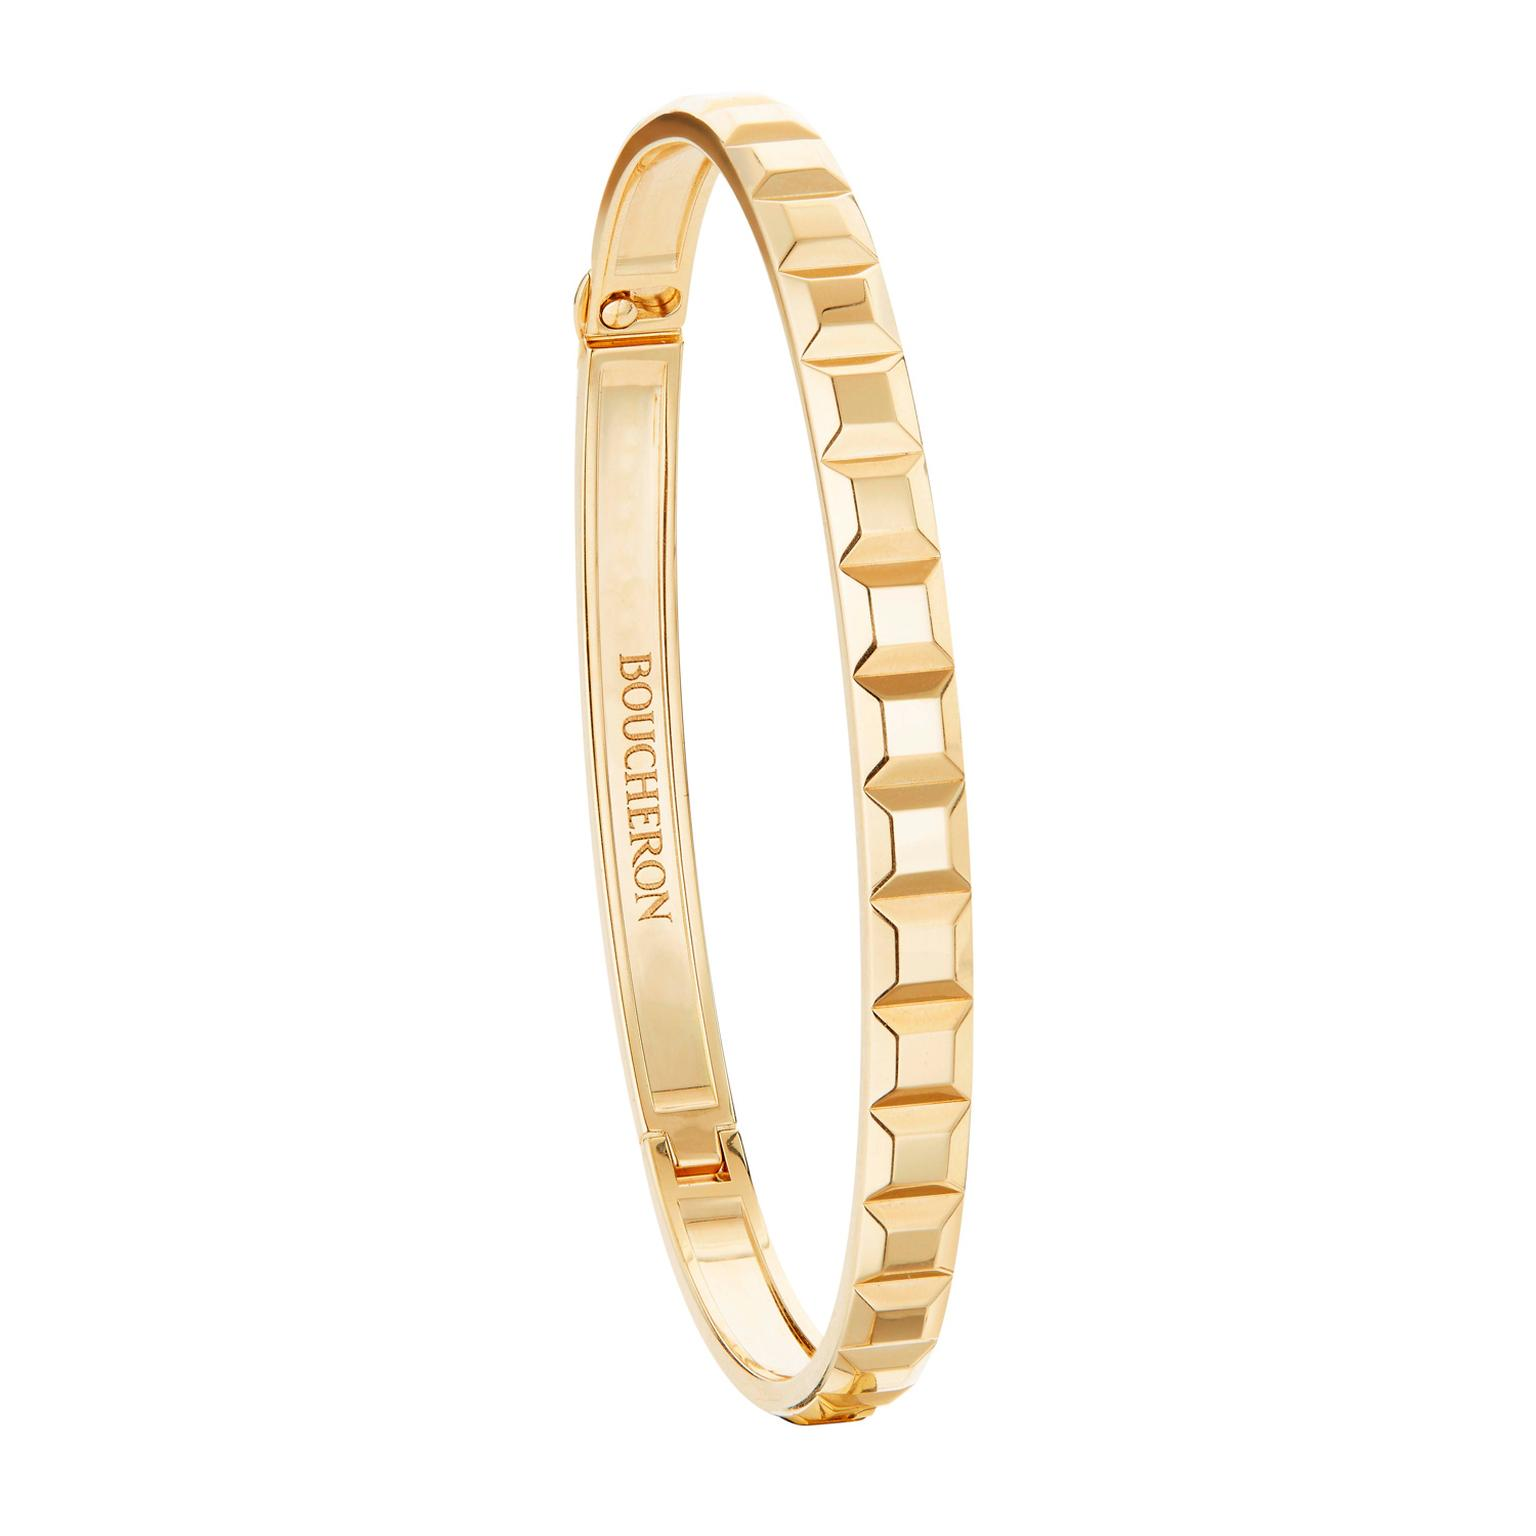 Boucheron Clou de Paris bangle in yellow gold